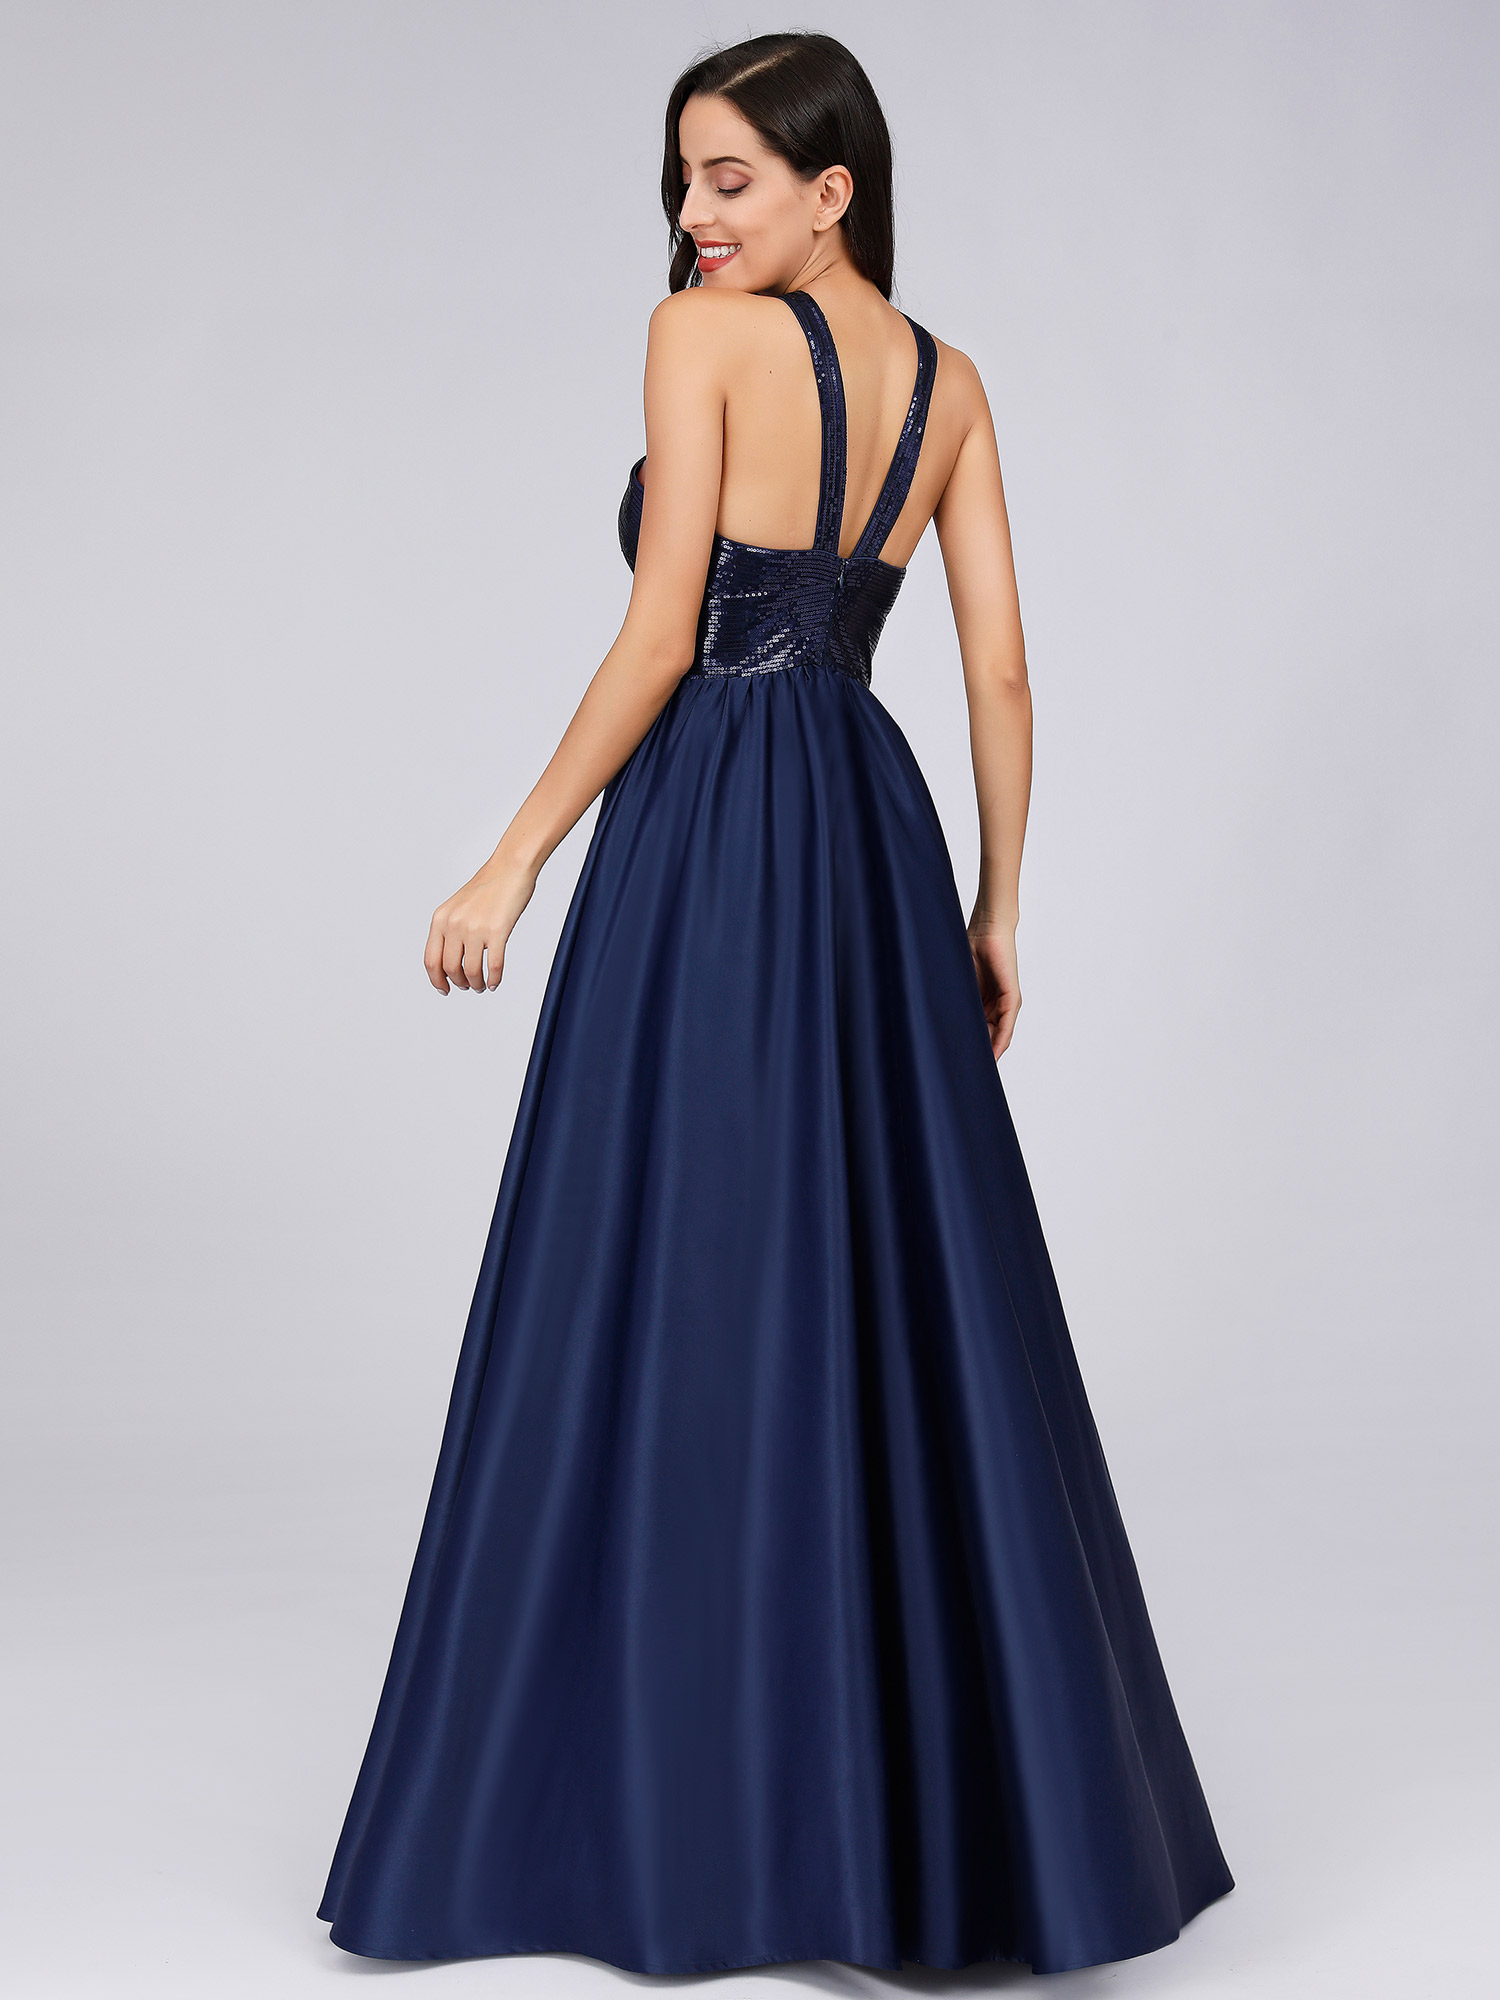 Ever-pretty-US-Long-Navy-Blue-Formal-Prom-Gowns-Evening-Cocktail-Party-Dresses thumbnail 5